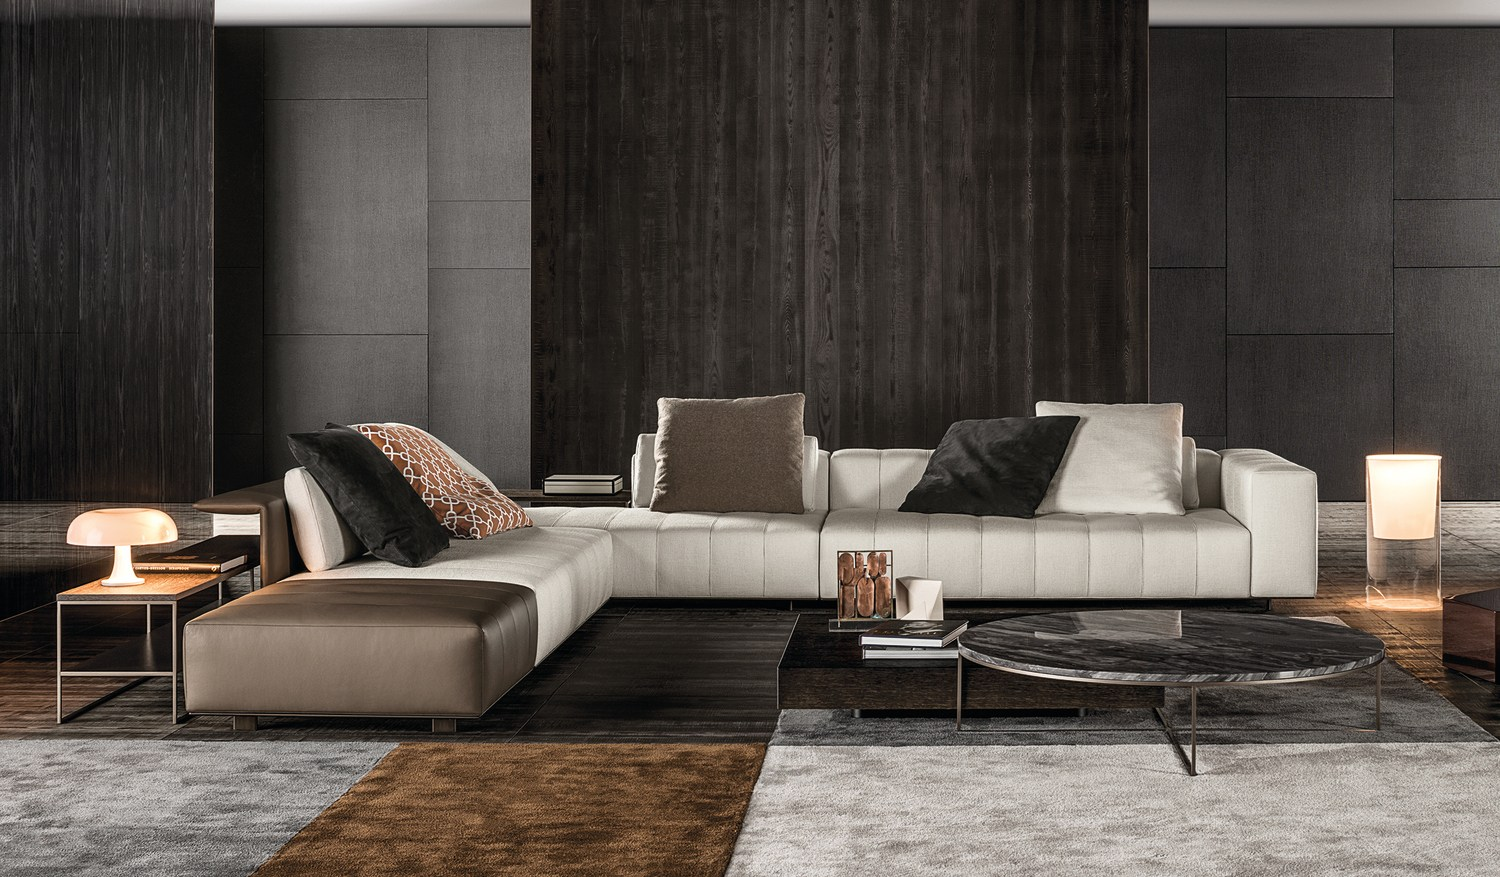 sofa freeman seating system by minotti design rodolfo dordoni. Black Bedroom Furniture Sets. Home Design Ideas